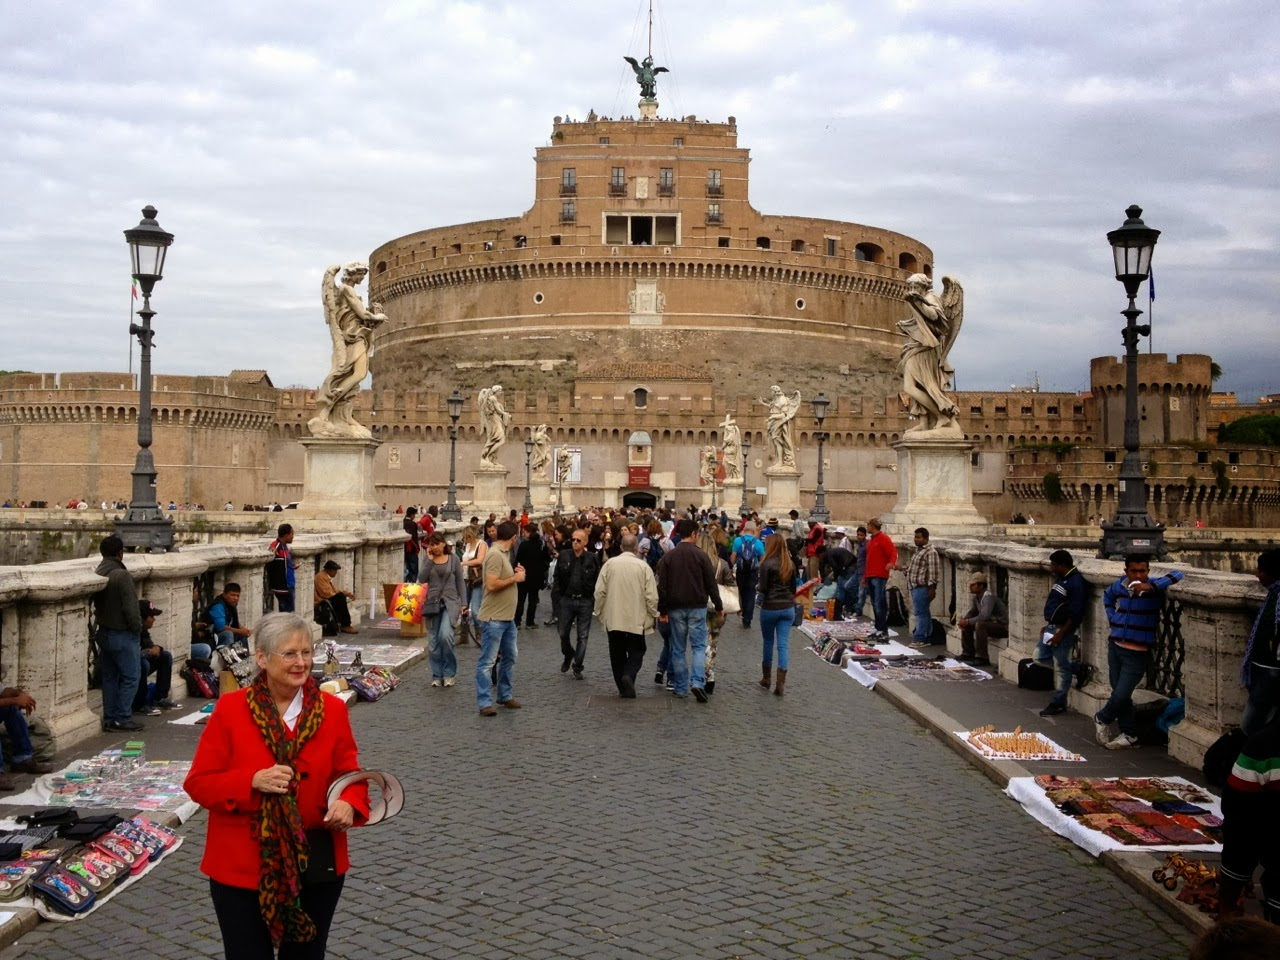 picture frame rome italy - photo#29